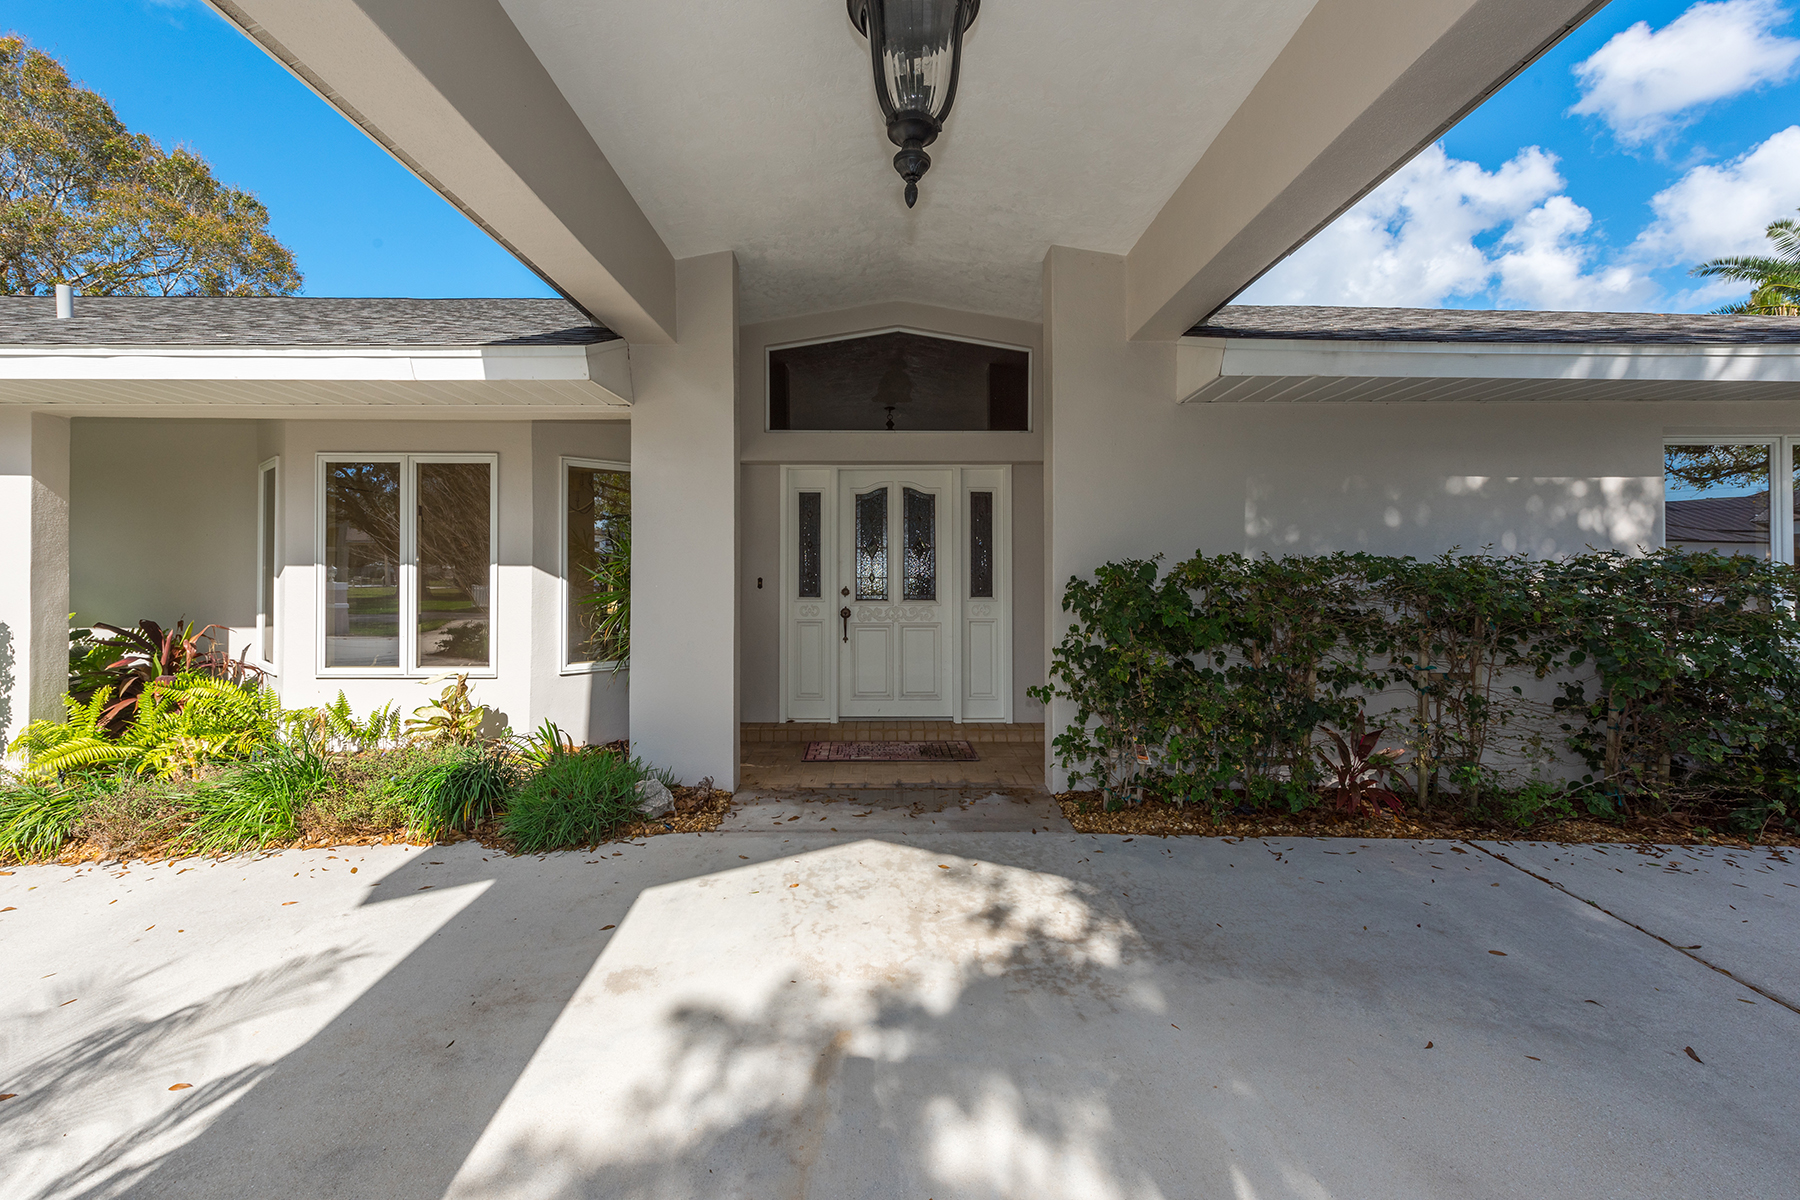 Single Family Home for Sale at FOREST LAKES 3211 E Forest Lake Dr, Sarasota, Florida, 34232 United States